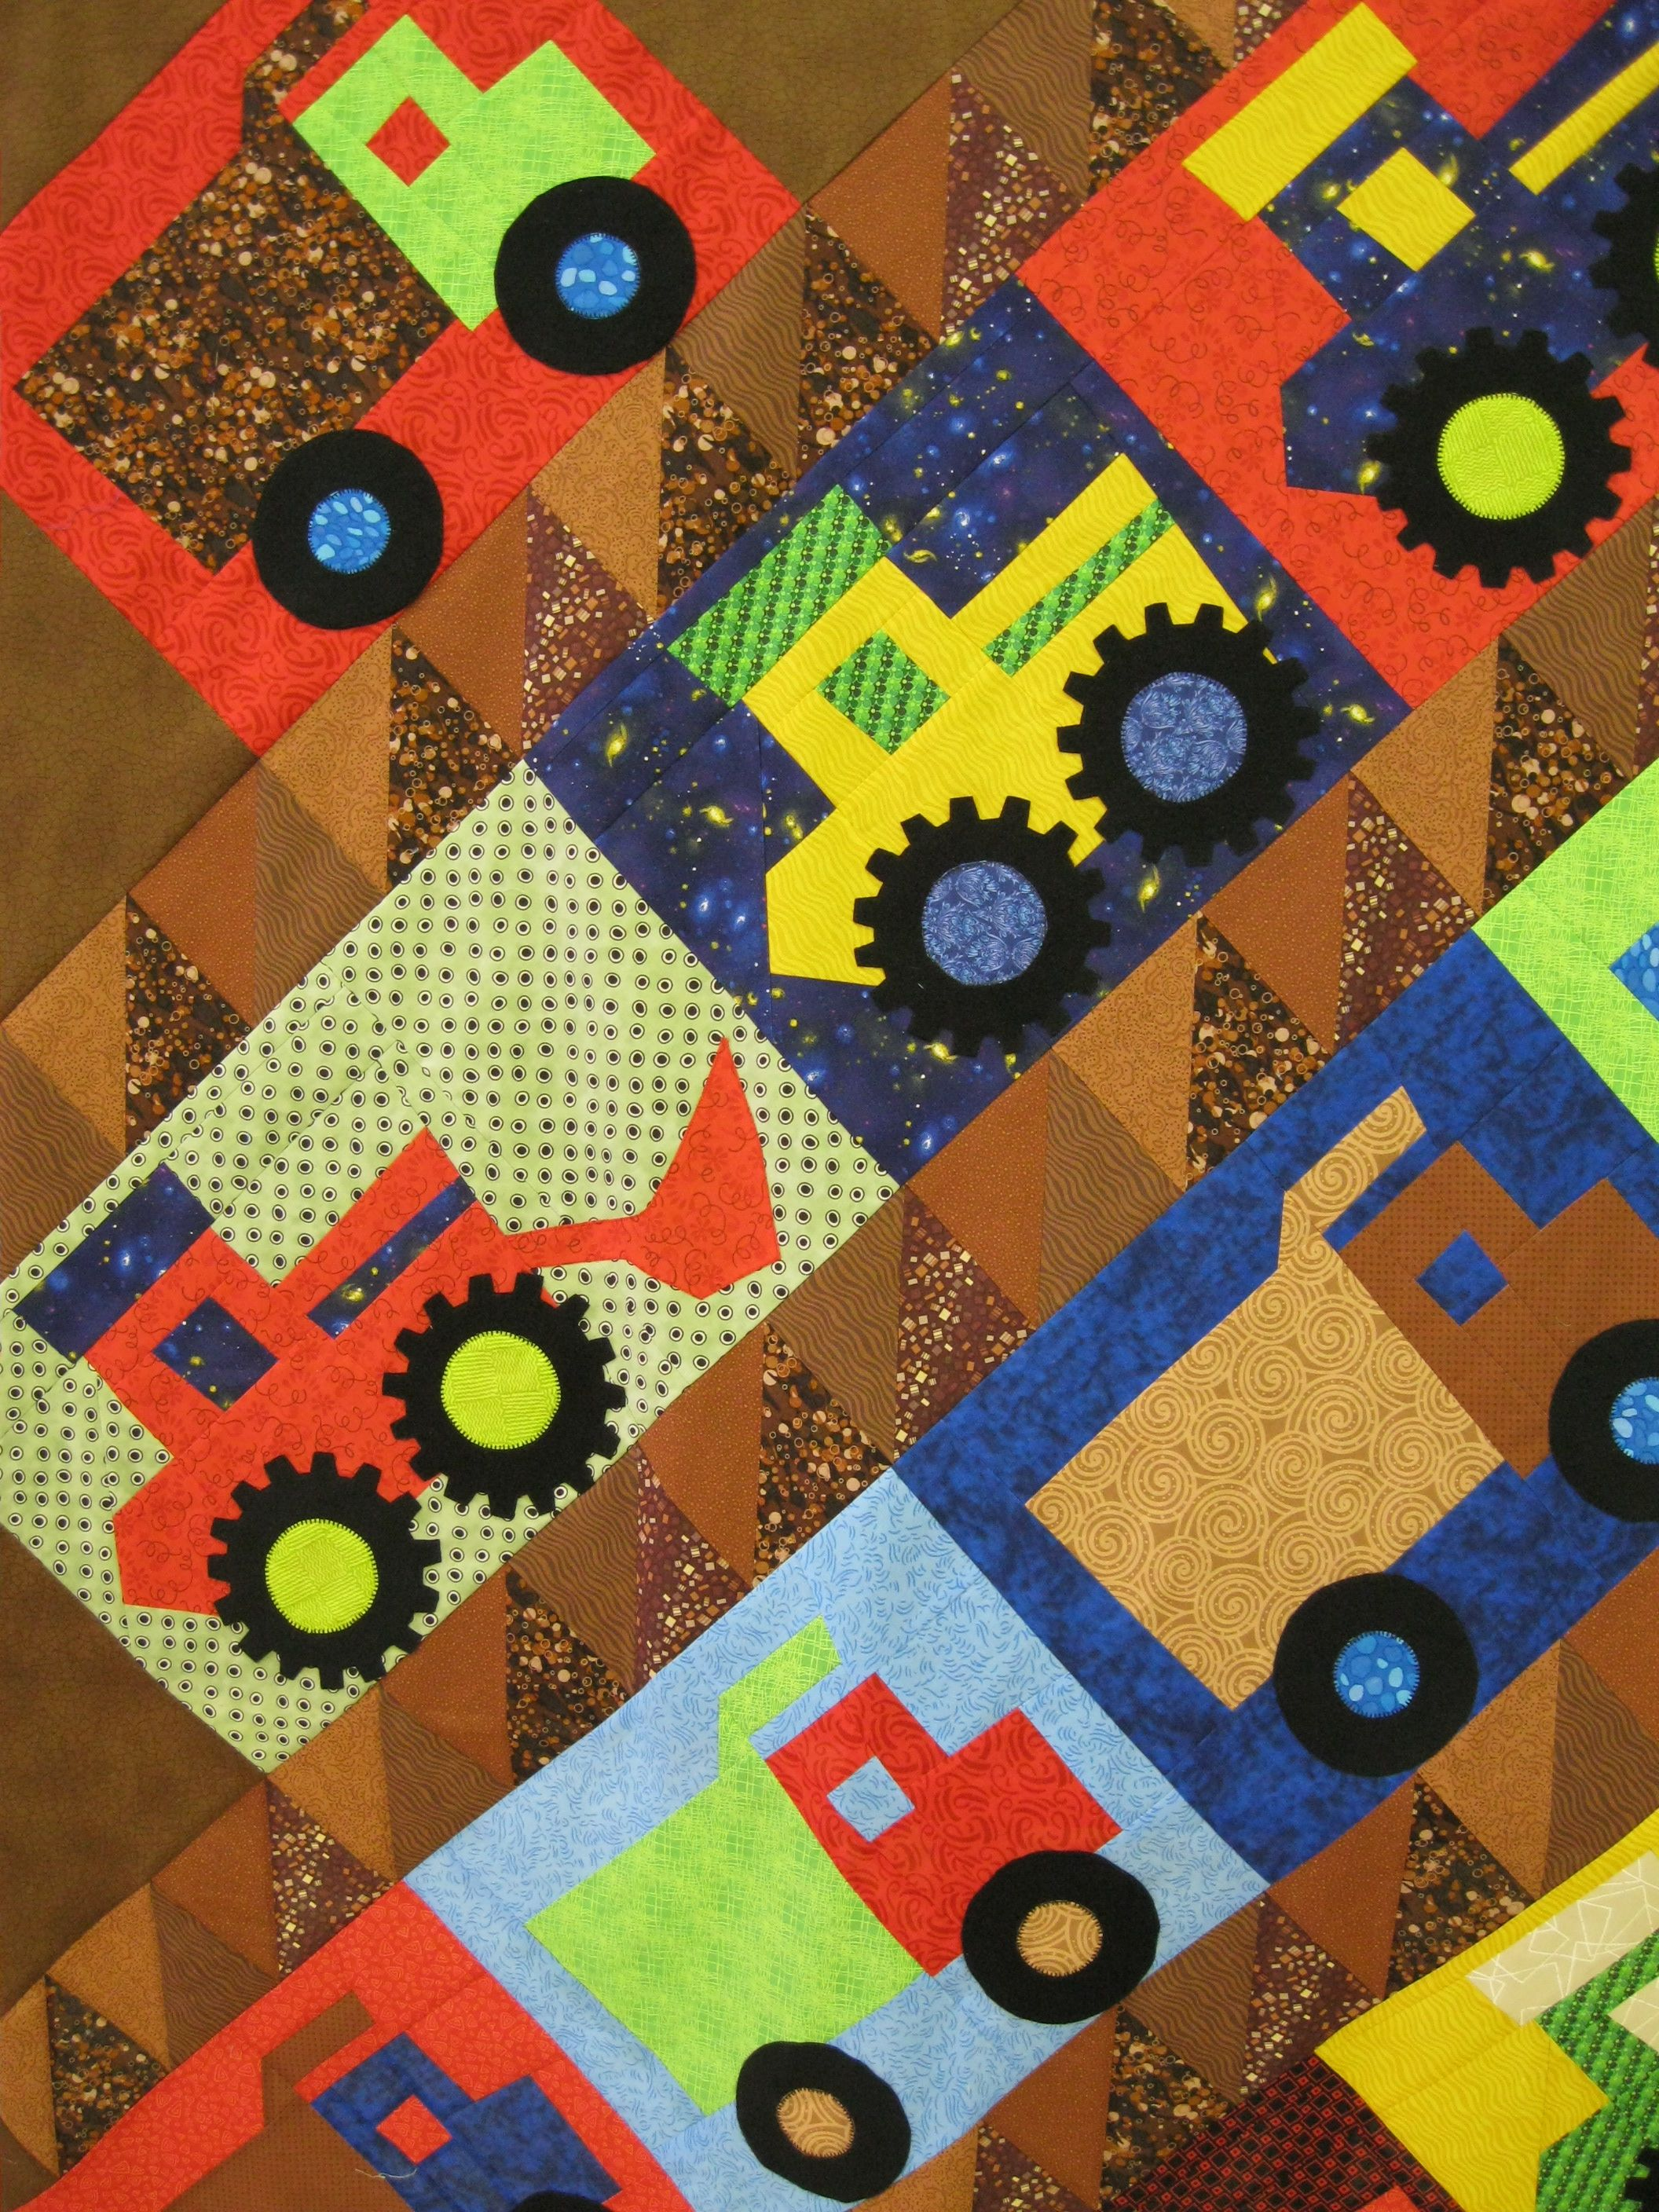 Buggy Barn Quilts Patterns : buggy, quilts, patterns, Buggy, Patterns, Quilt, Michelle, Clubb, Patterns,, Quilts